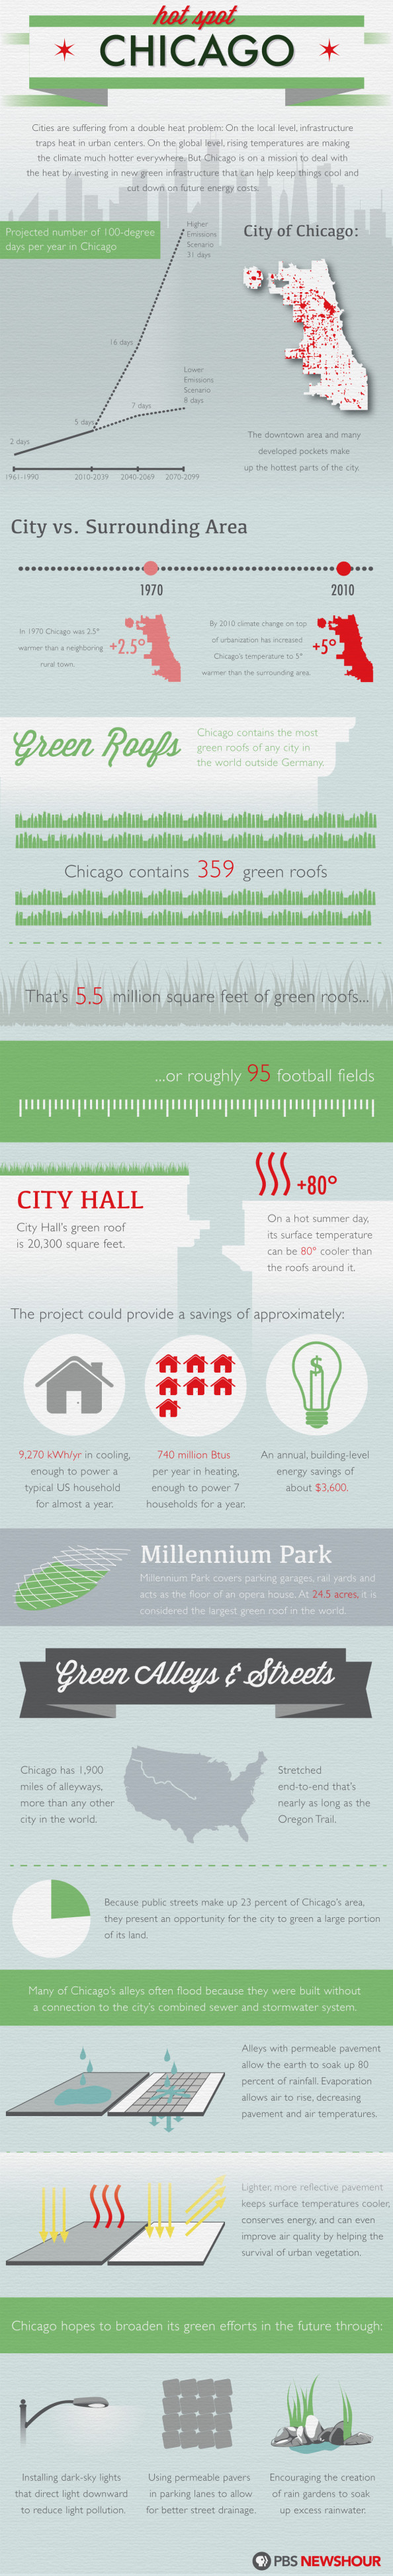 Hot Spot Chicago Infographic